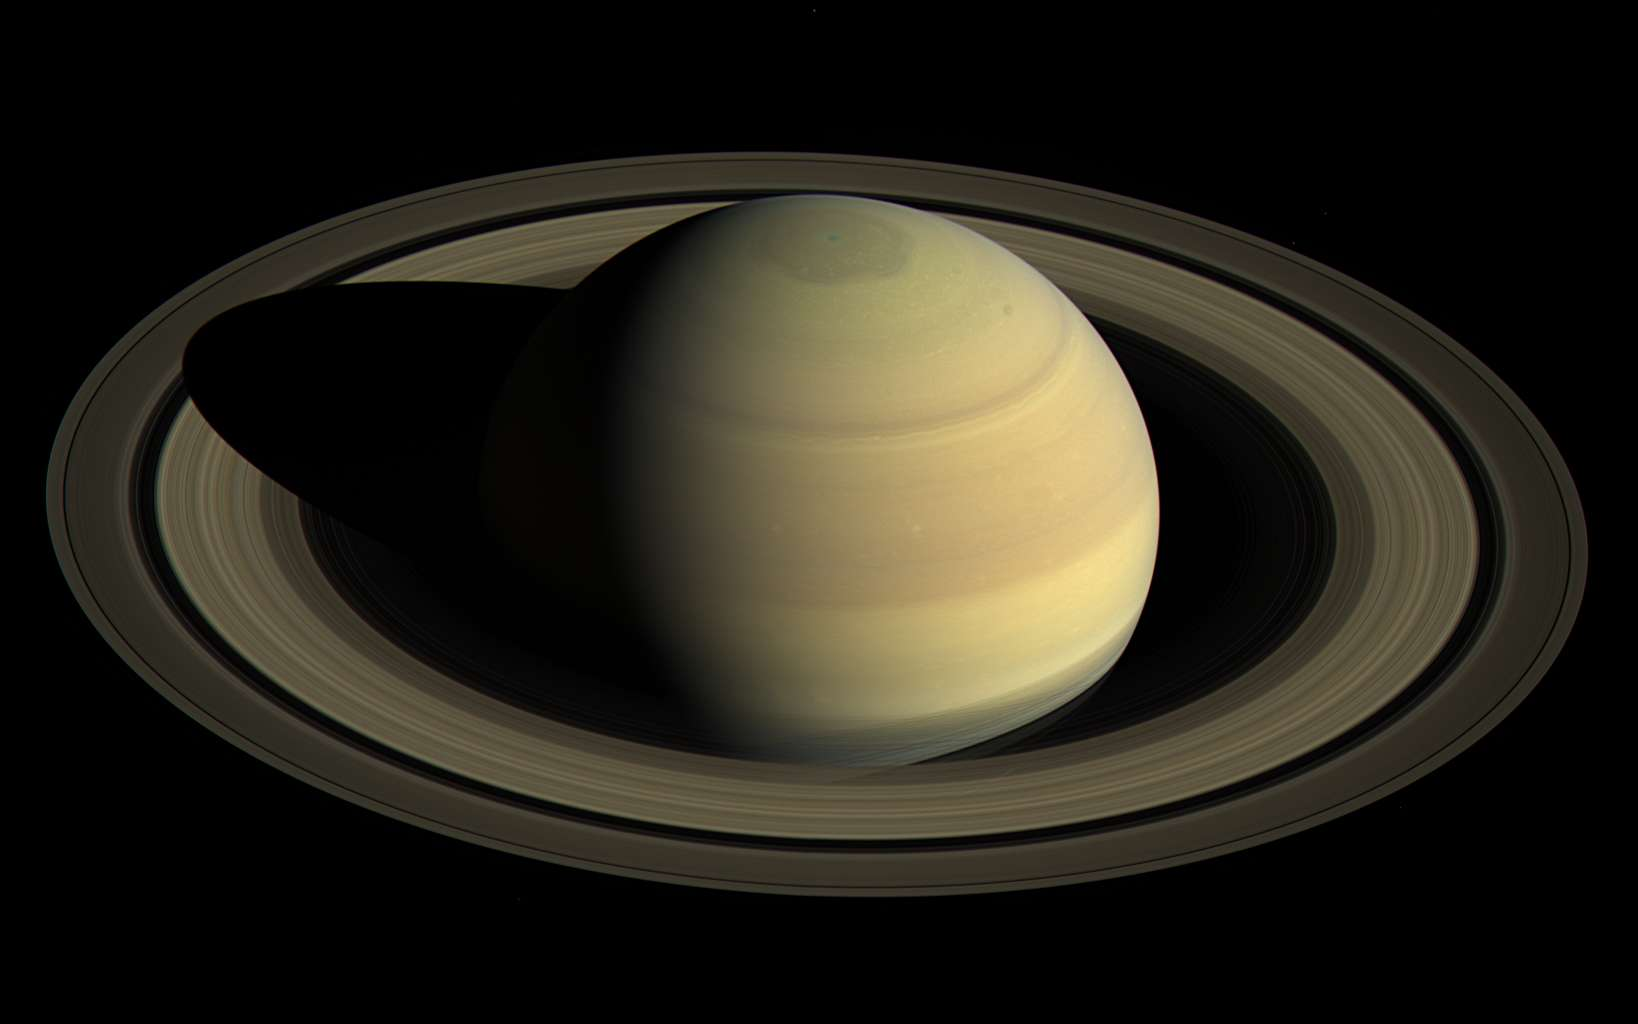 Saturne photographiée par la sonde Cassini le 25 avril 2016. © Nasa, JPL-Caltech, Space Science Institute